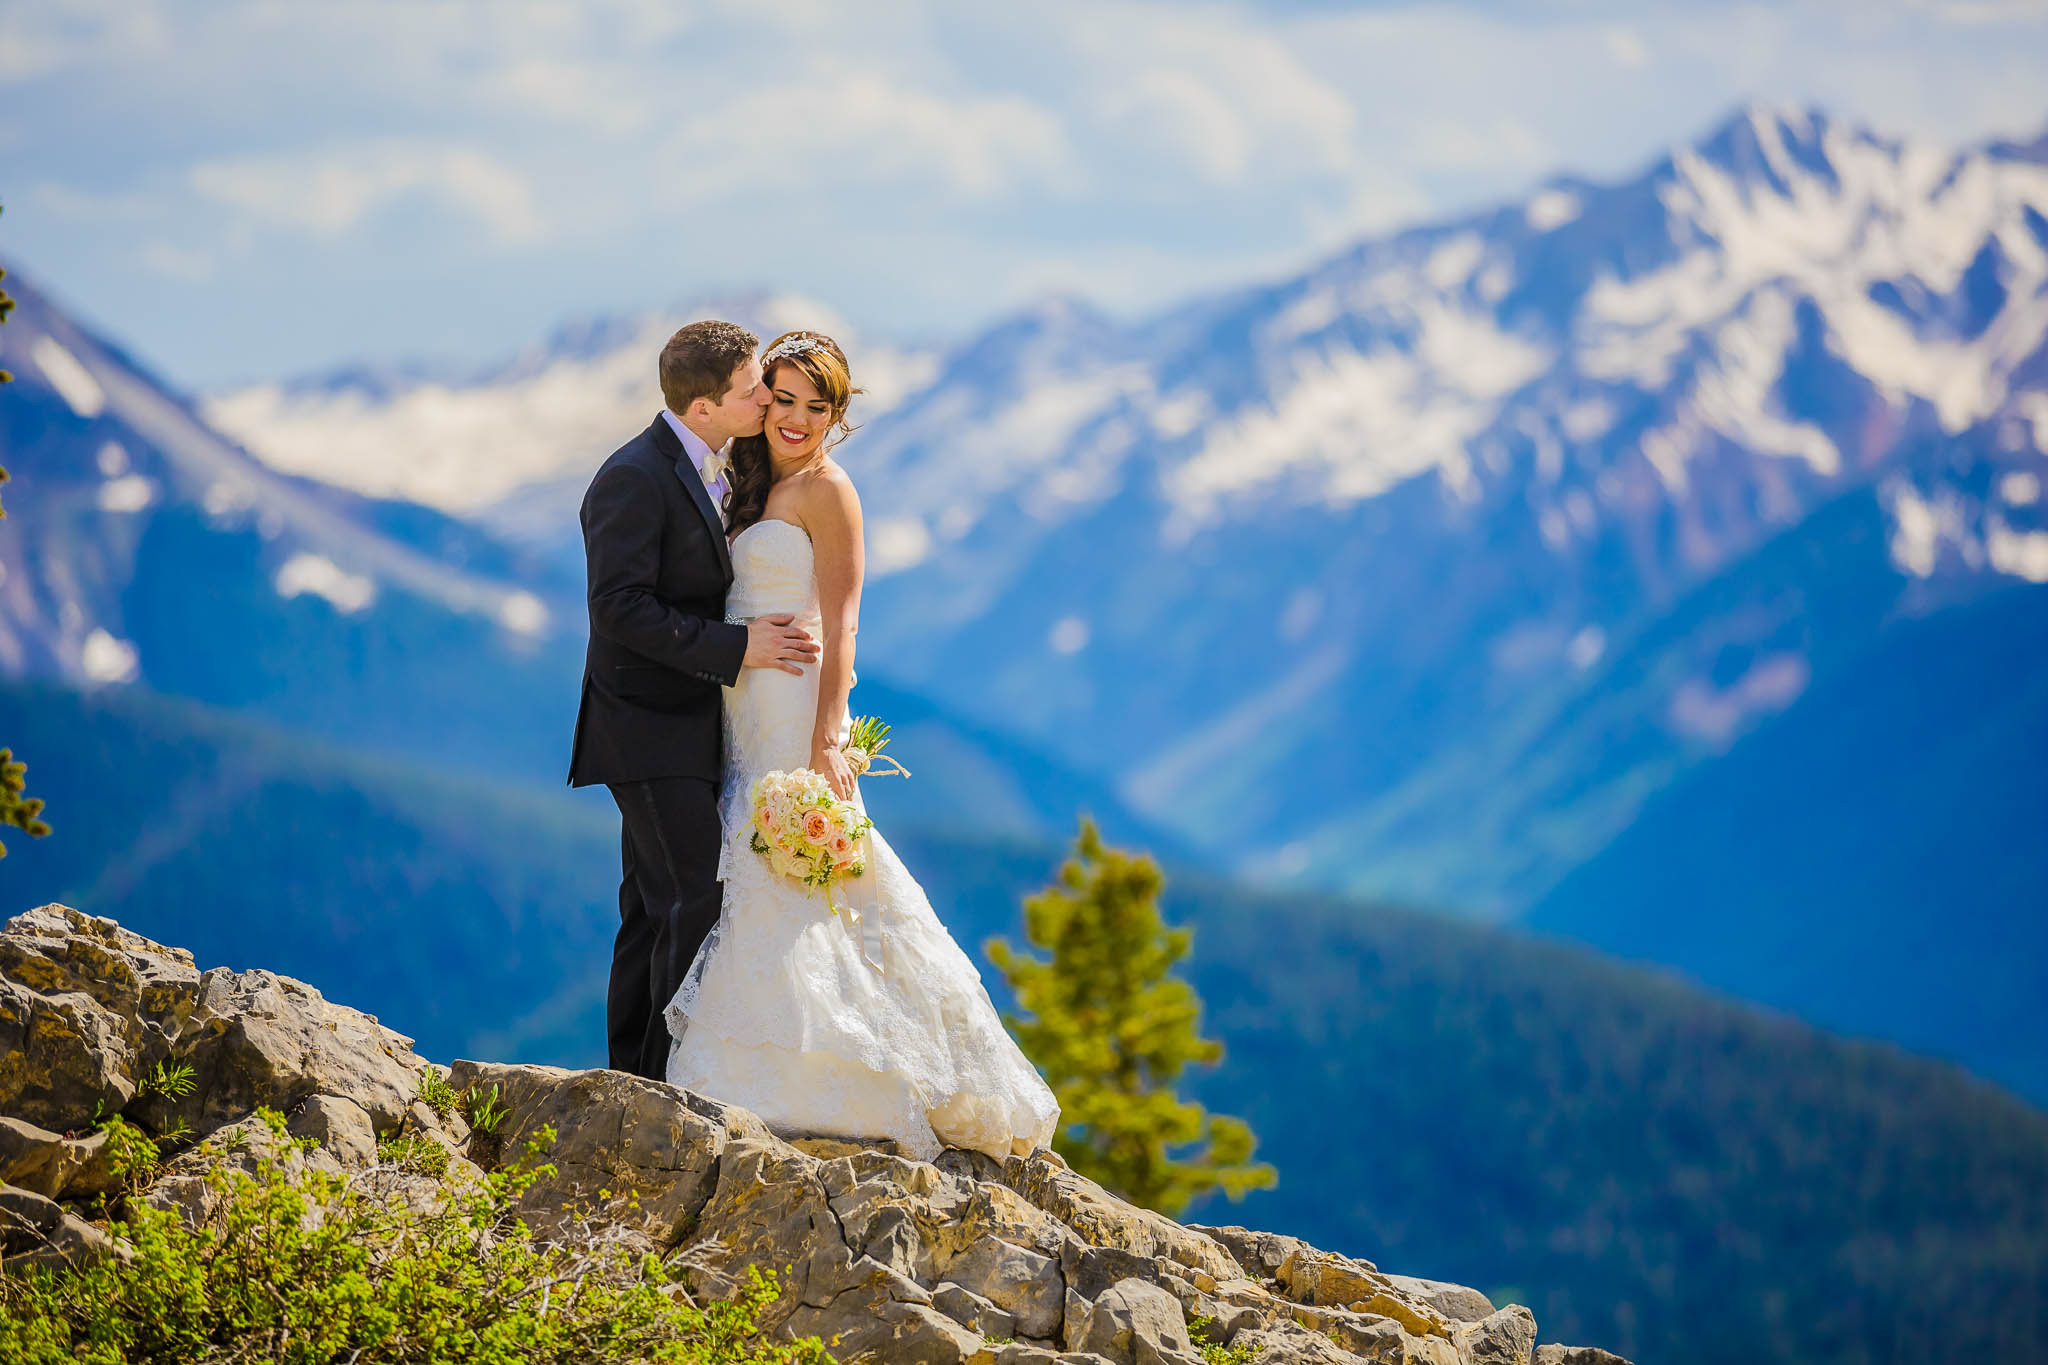 aspen co wedding photographer dreamtime images